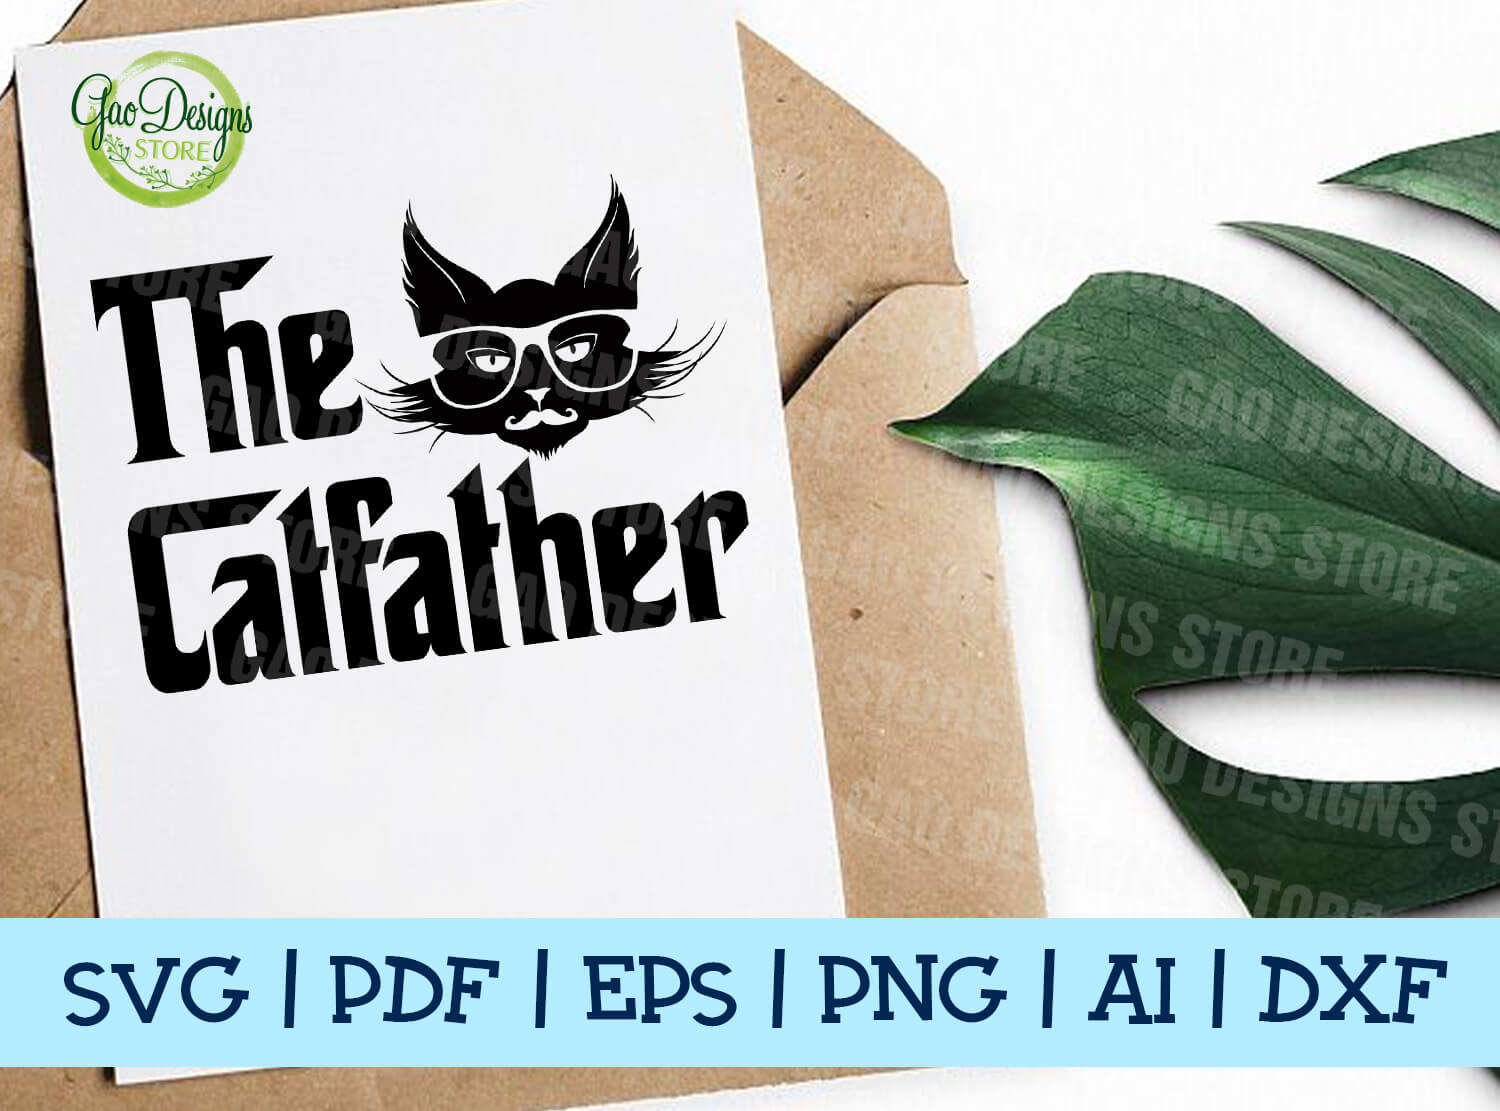 Free Warm family fathers day phrase svg art word. Skip To Content Submit Close Search Just Added To Your Cart Qty View Cart Continue Shopping Save Money With Coupons More Click Here Gaodesigns Store Best Svg Files For Crafter Home Collections All Products Easter Mother S Day Mardi Gras St SVG, PNG, EPS, DXF File